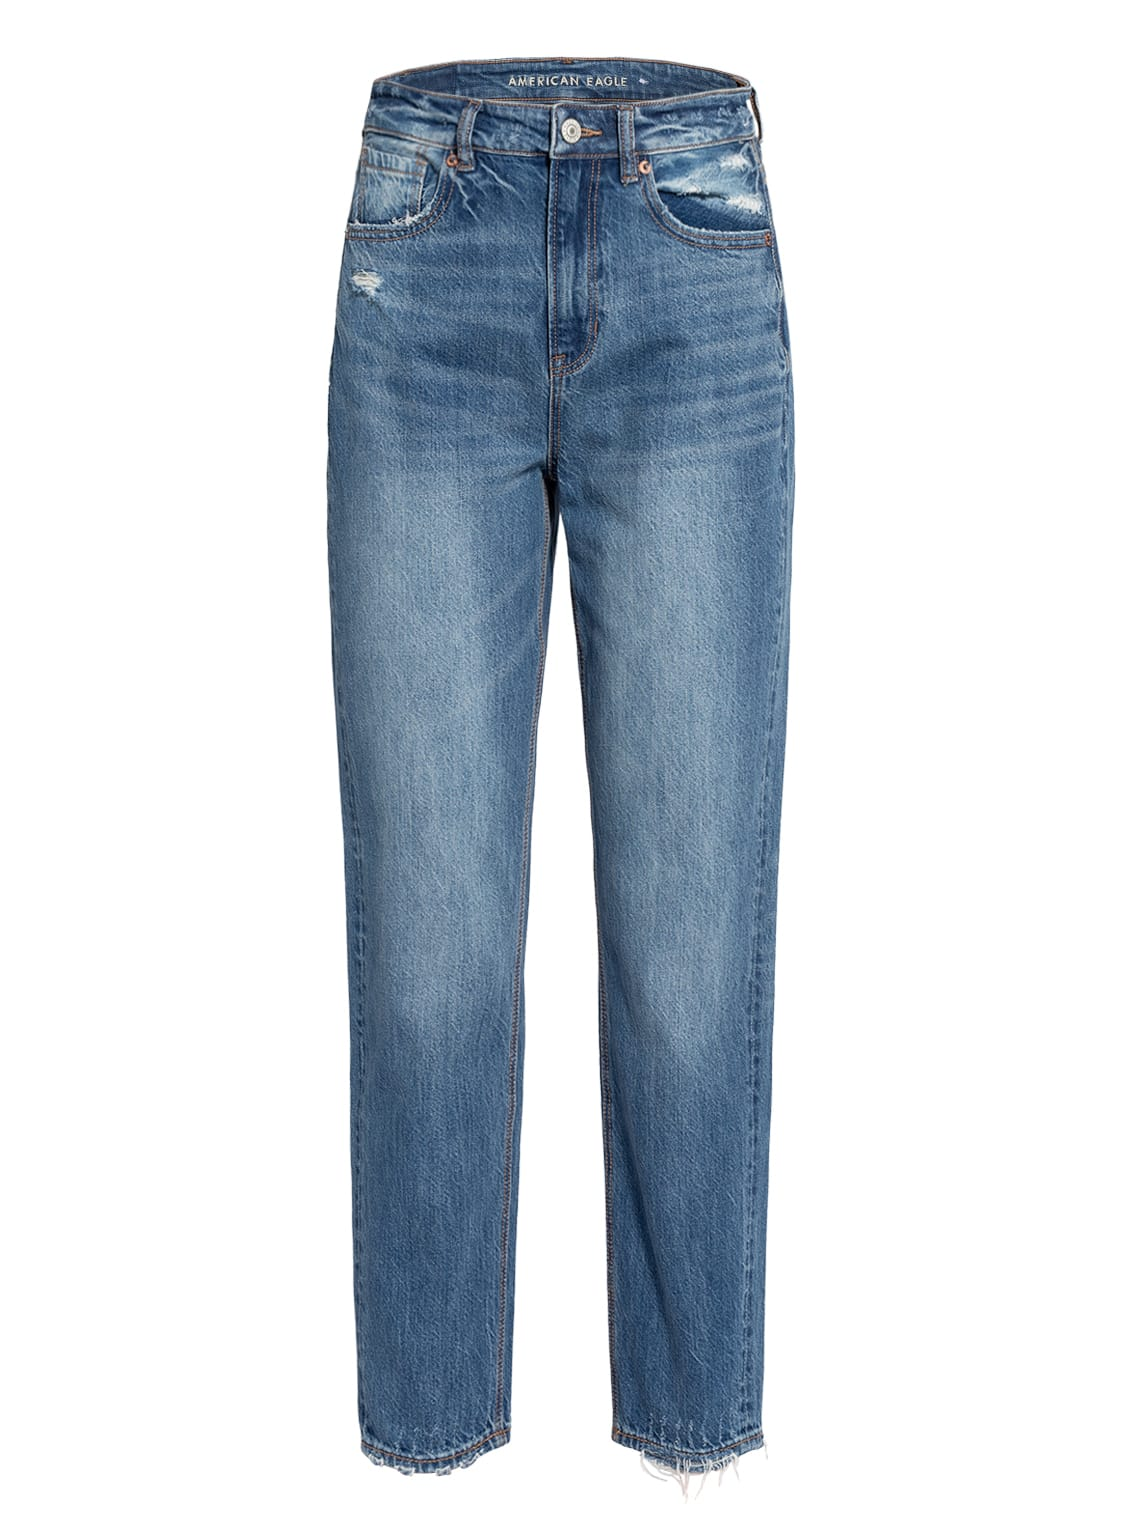 Image of American Eagle Destroyed Jeans blau